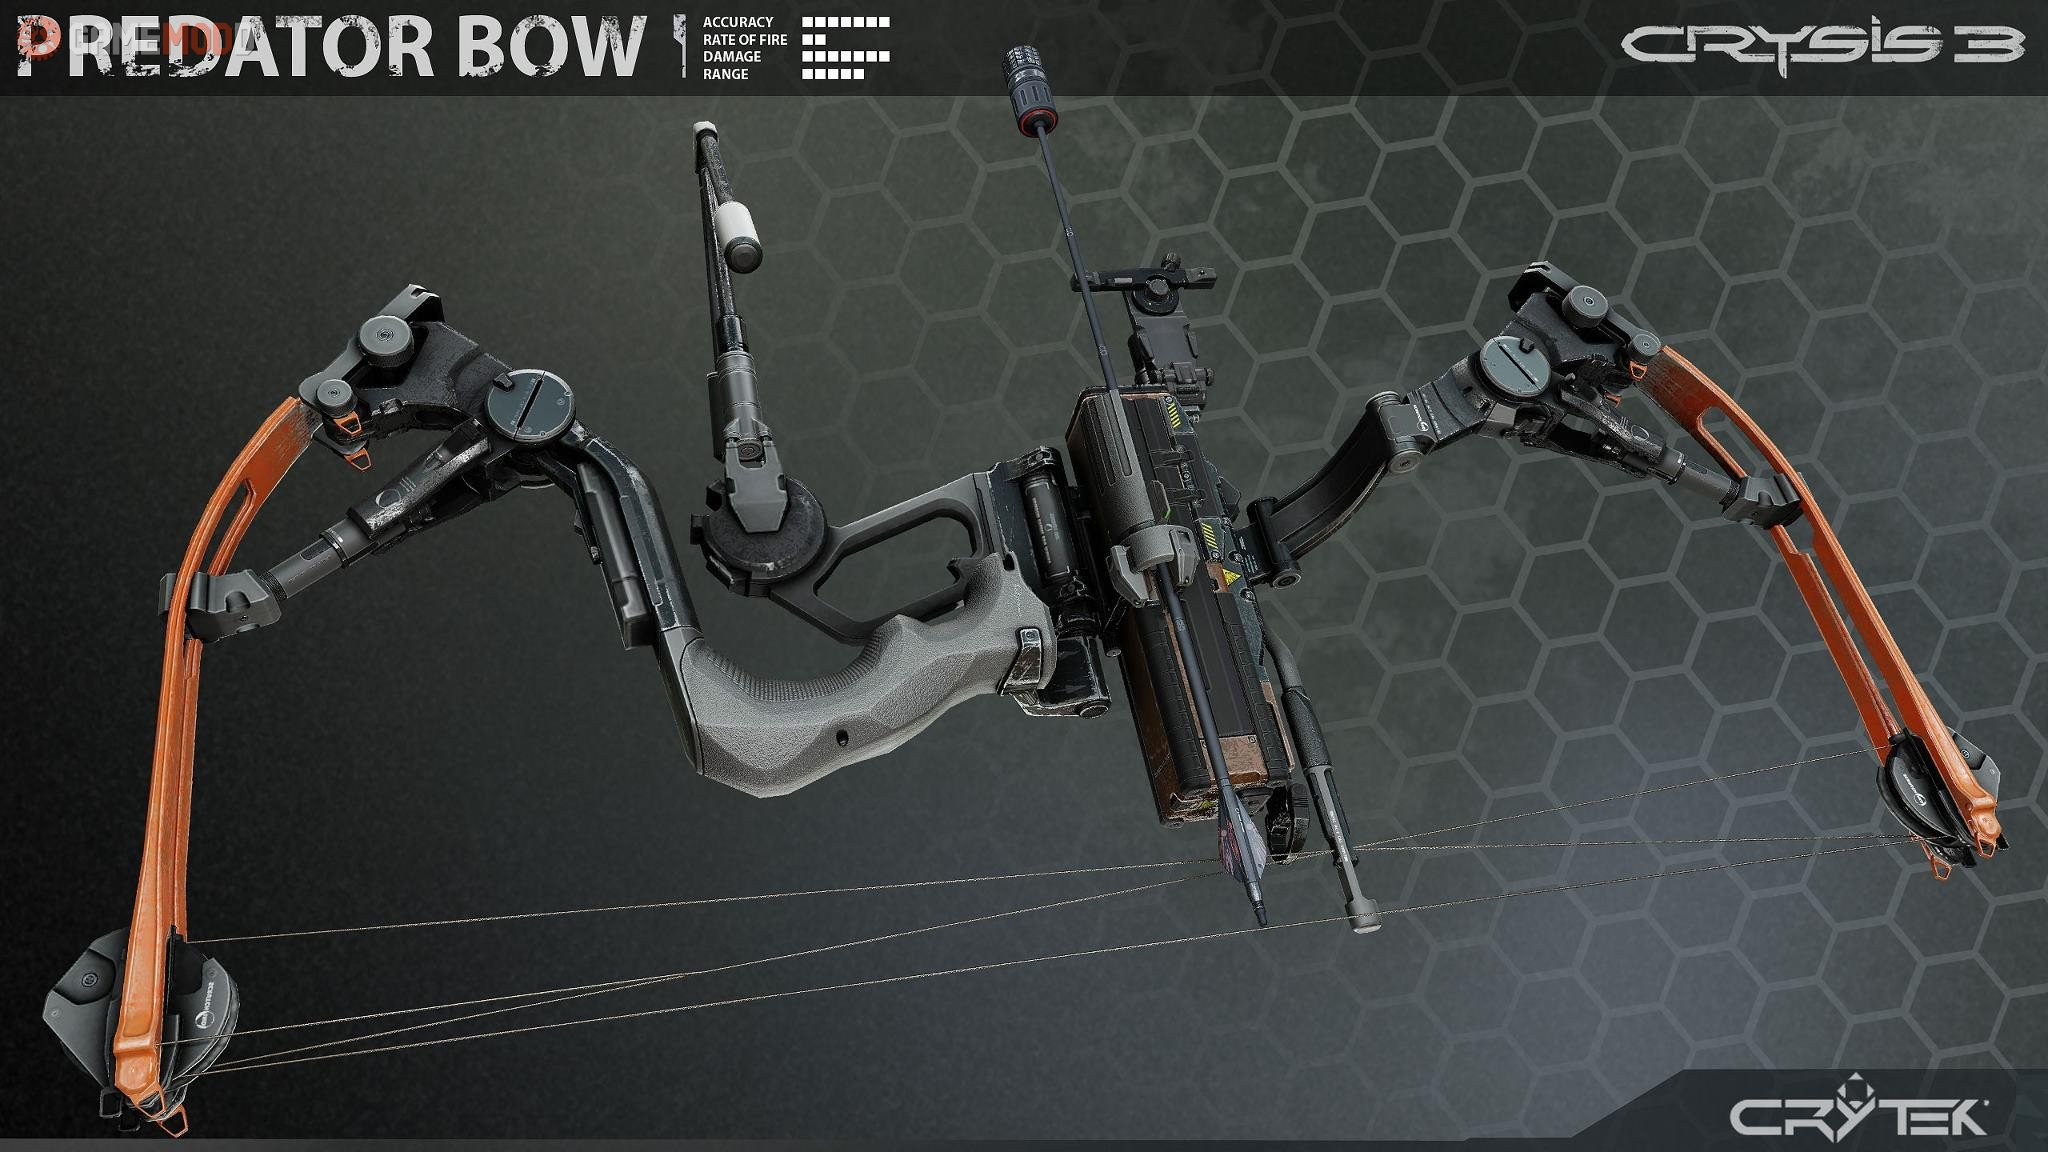 Crysis_3_Predator_Bow-CS 1.6 » CS 1.6